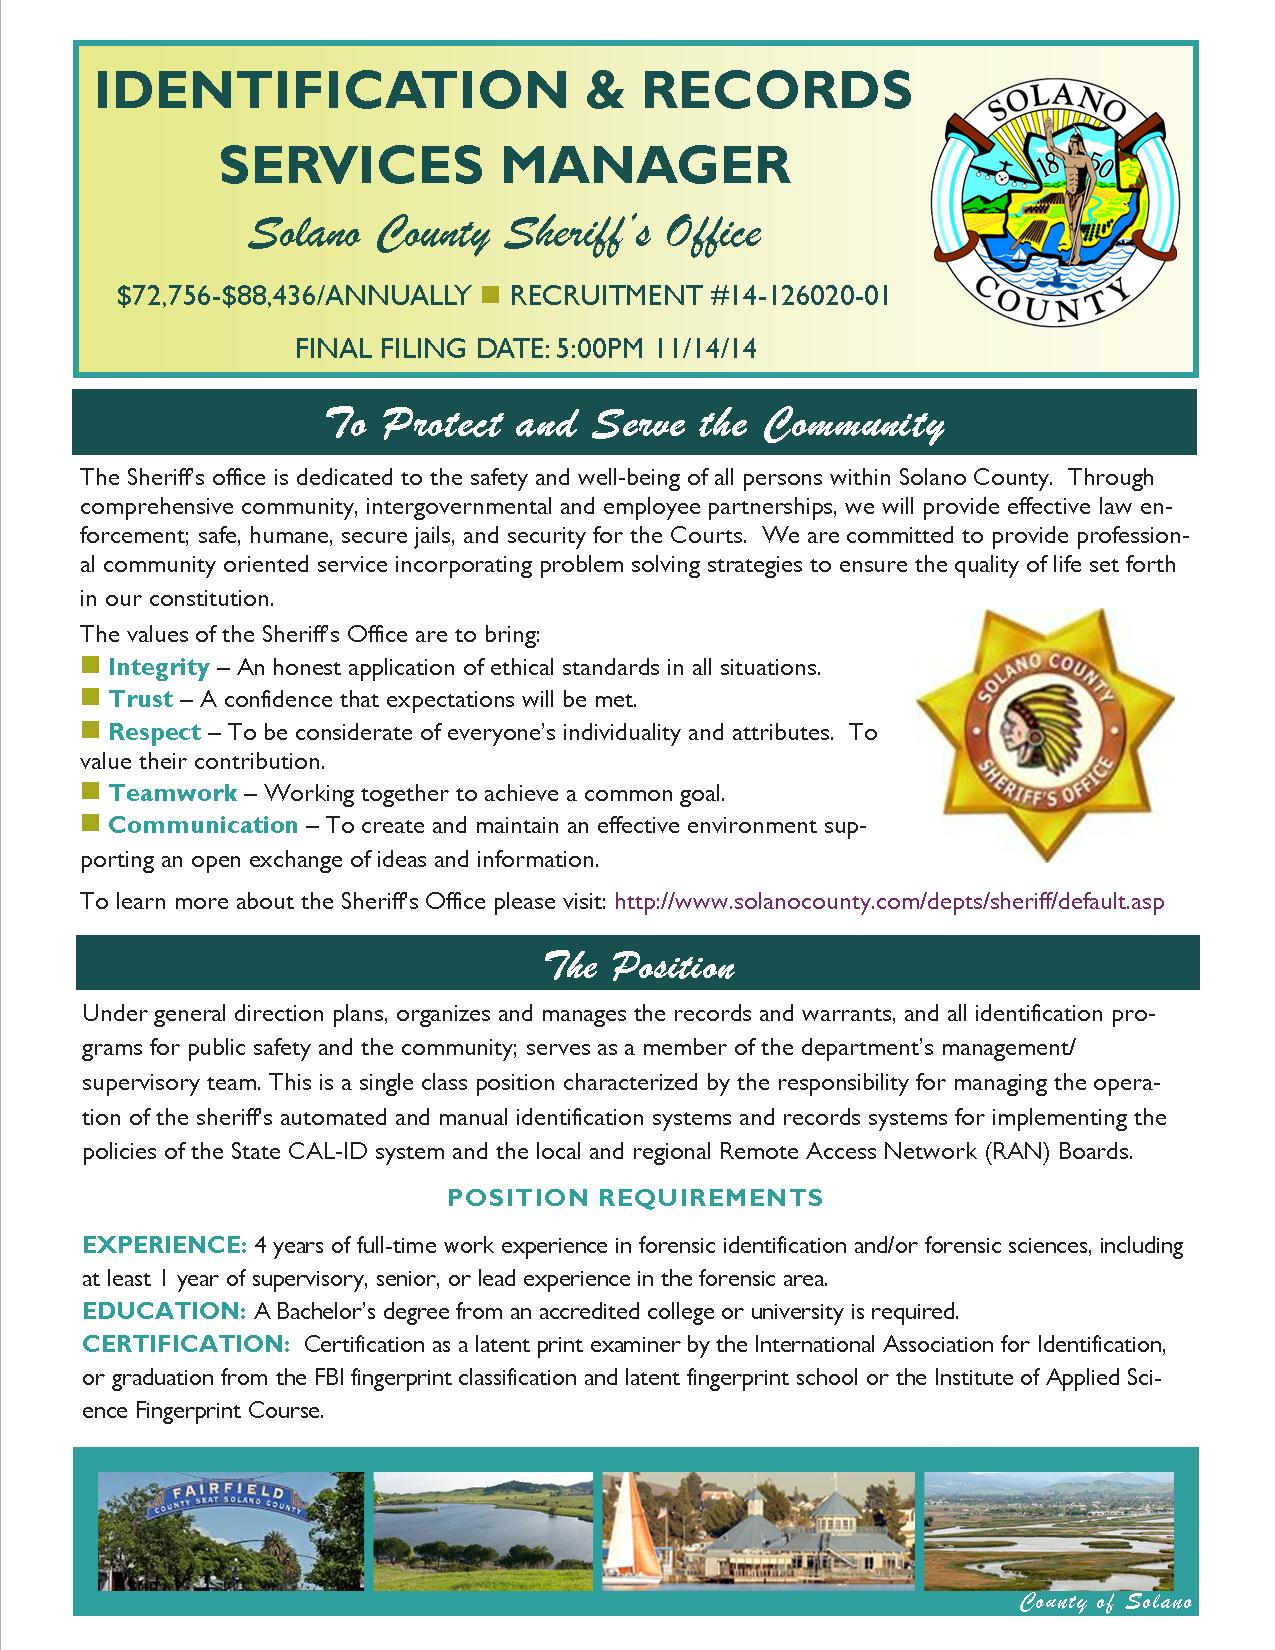 County Of Solano Job Announcement Identification Records